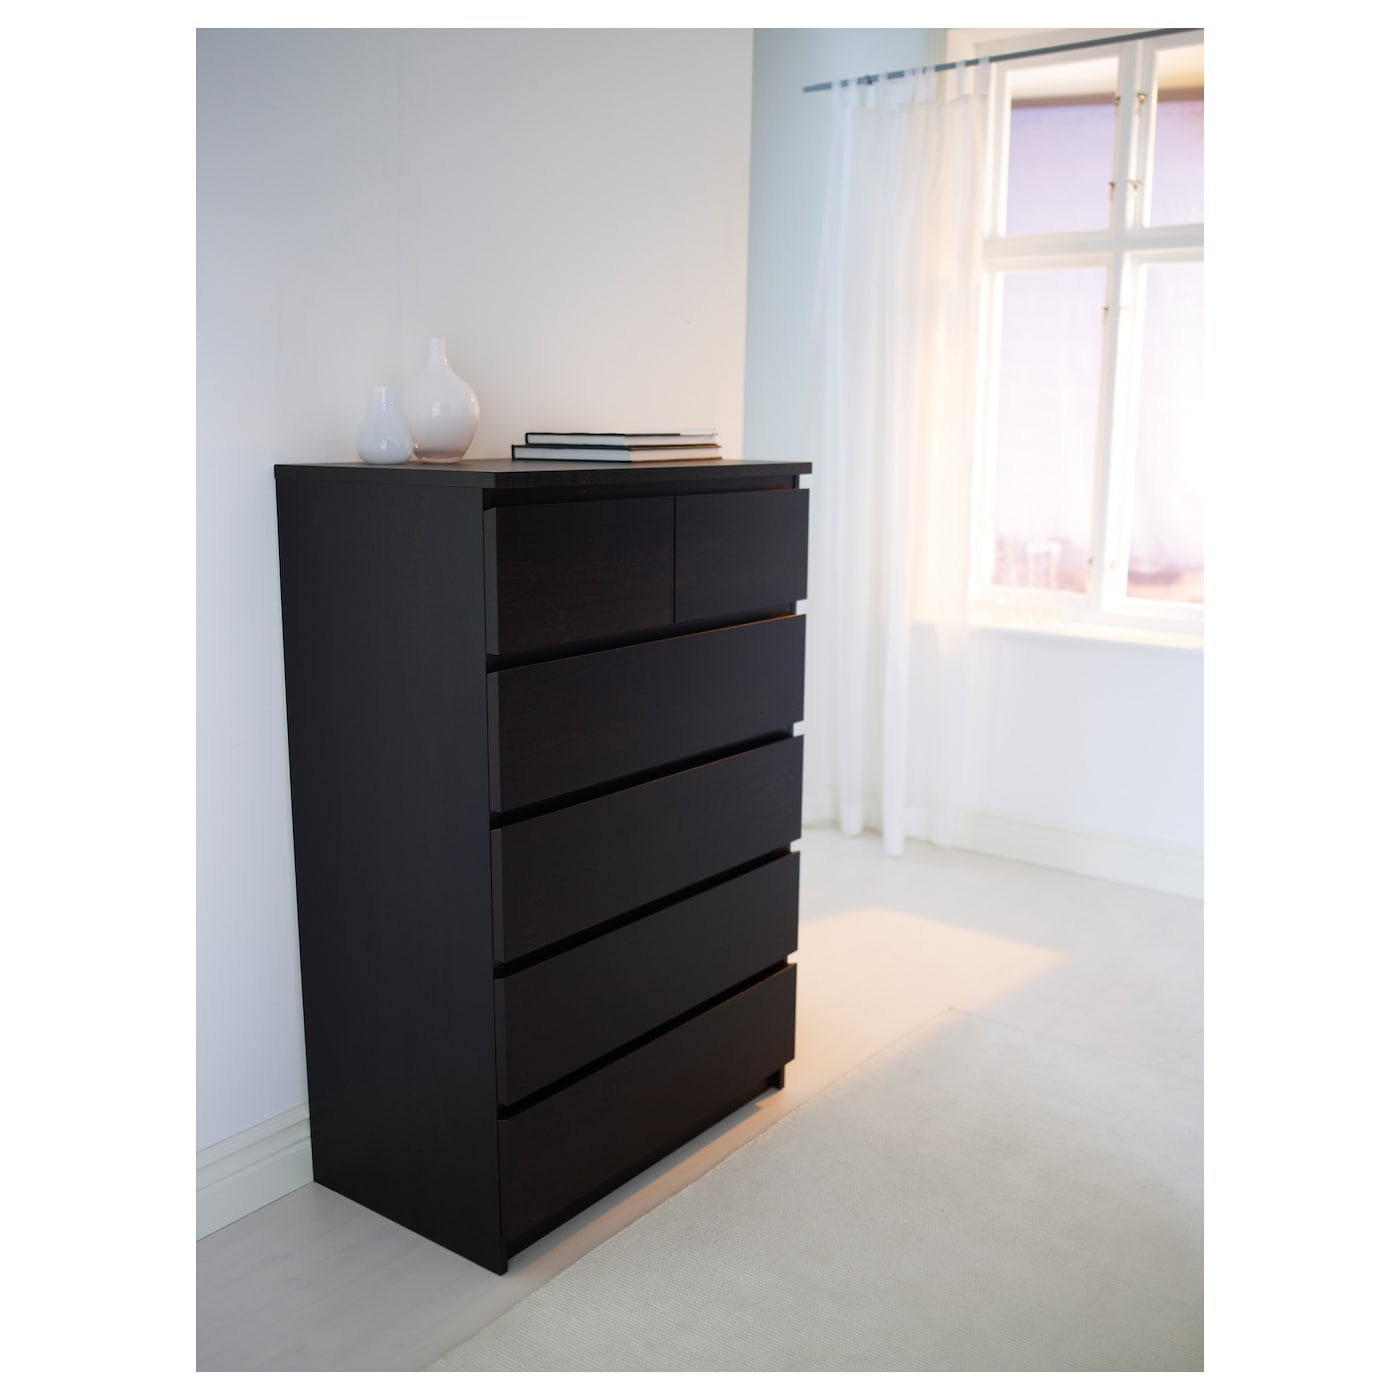 malm chest of 6 drawers black brown 80x123 cm ikea. Black Bedroom Furniture Sets. Home Design Ideas